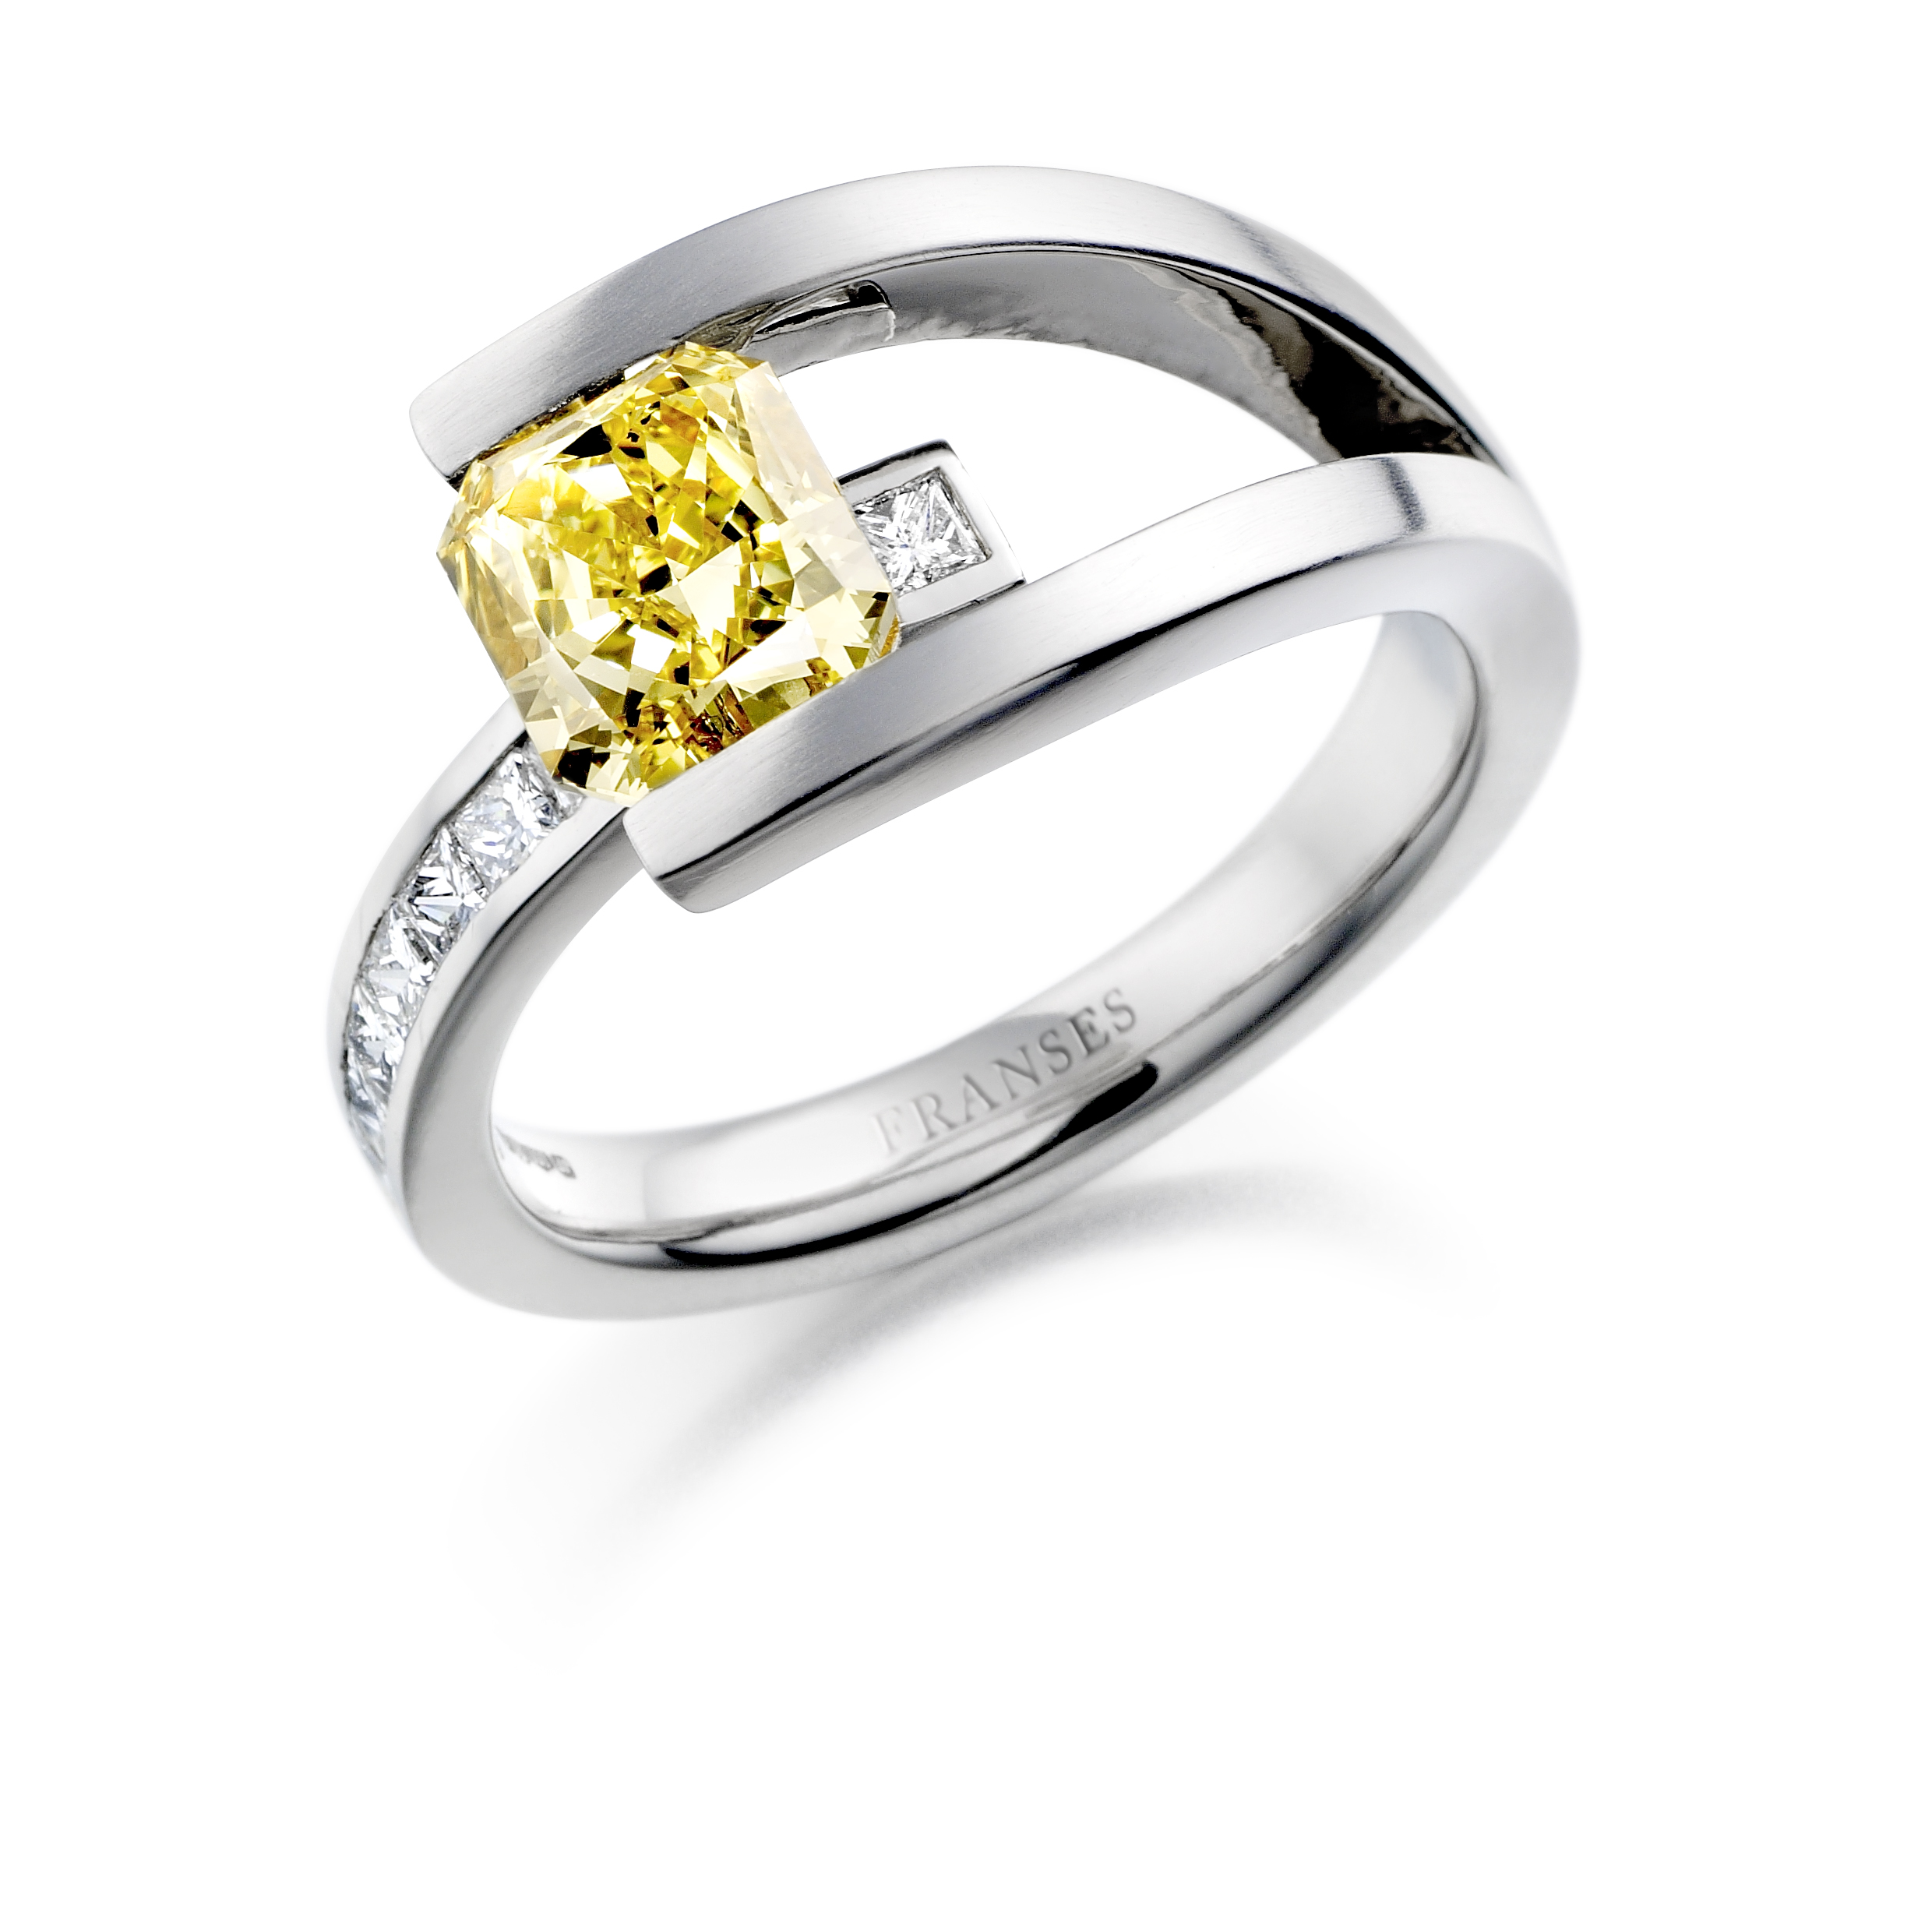 James' Manhattan ring